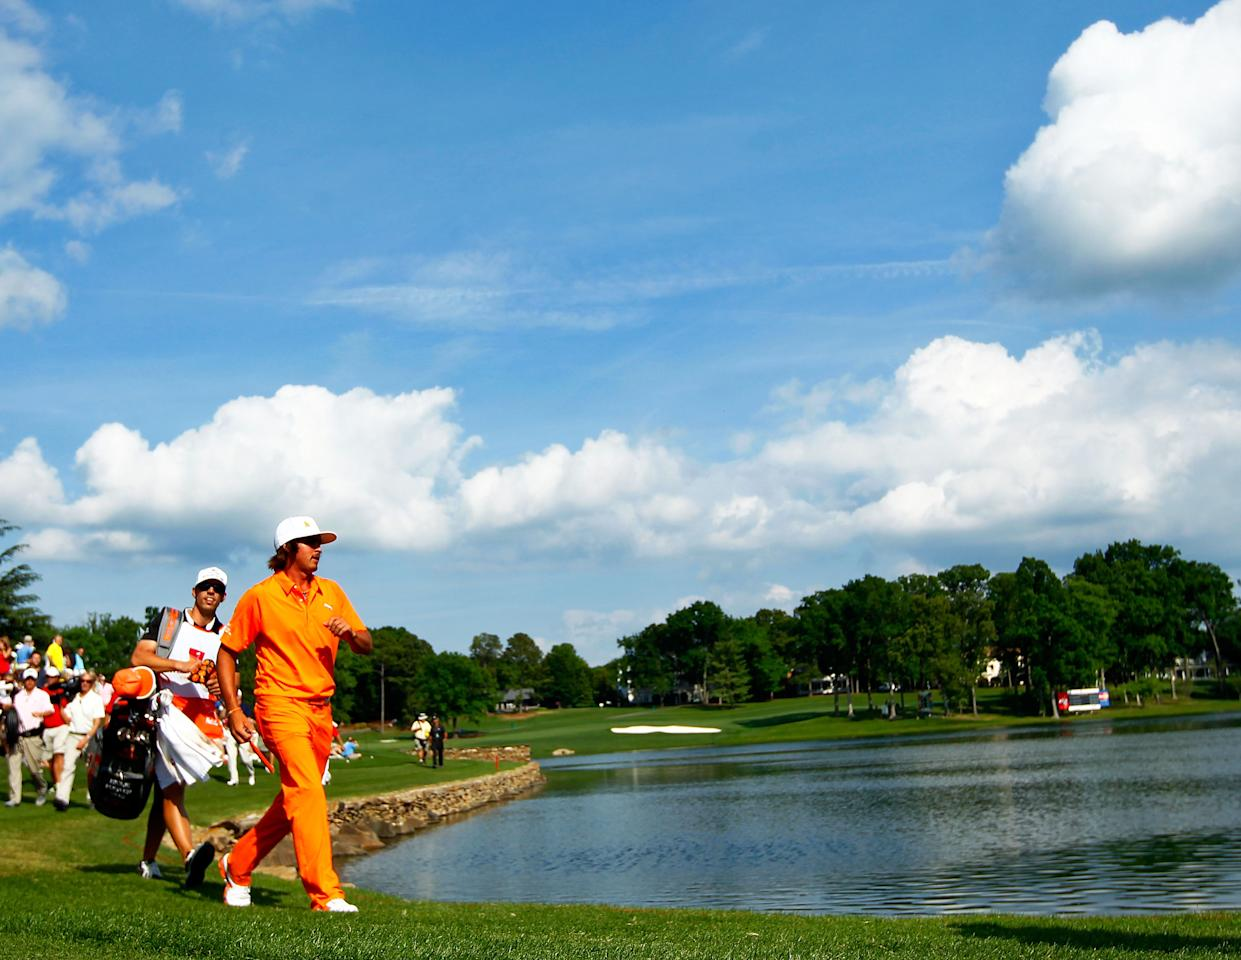 CHARLOTTE, NC - MAY 06: Rickie Fowler (R) of the United States and caddie Joseph Skovron (L) walk to the 17th green during the final round of the Wells Fargo Championship at the Quail Hollow Club on May 6, 2012 in Charlotte, North Carolina.  (Photo by Mike Ehrmann/Getty Images)